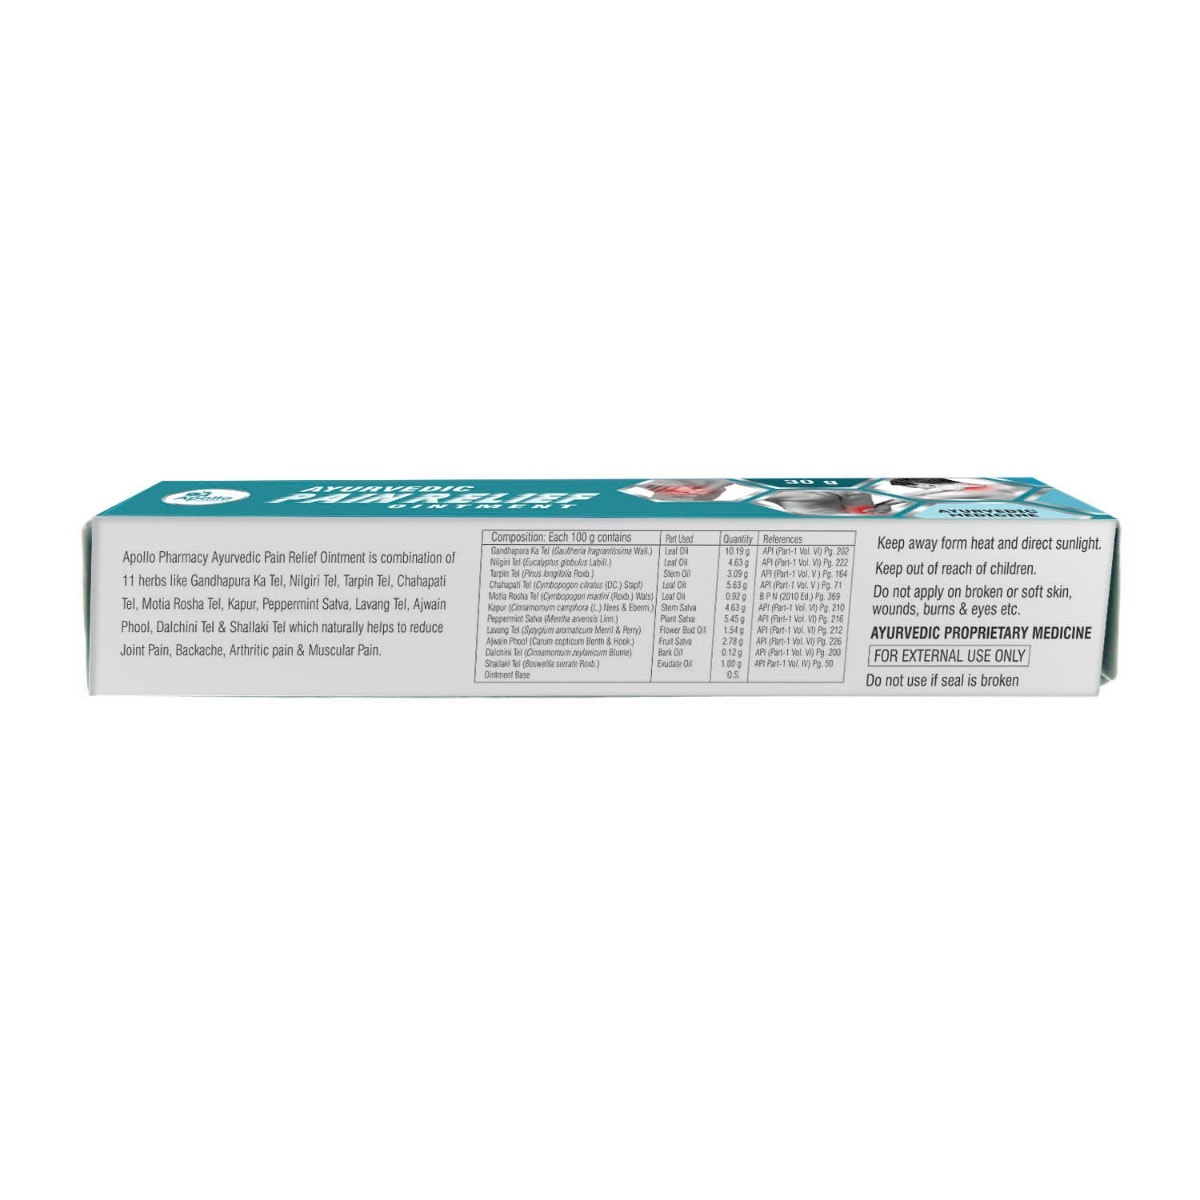 Apollo Pharmacy Ayurvedic Pain Relief Ointment, 30 gm, Pack of 1